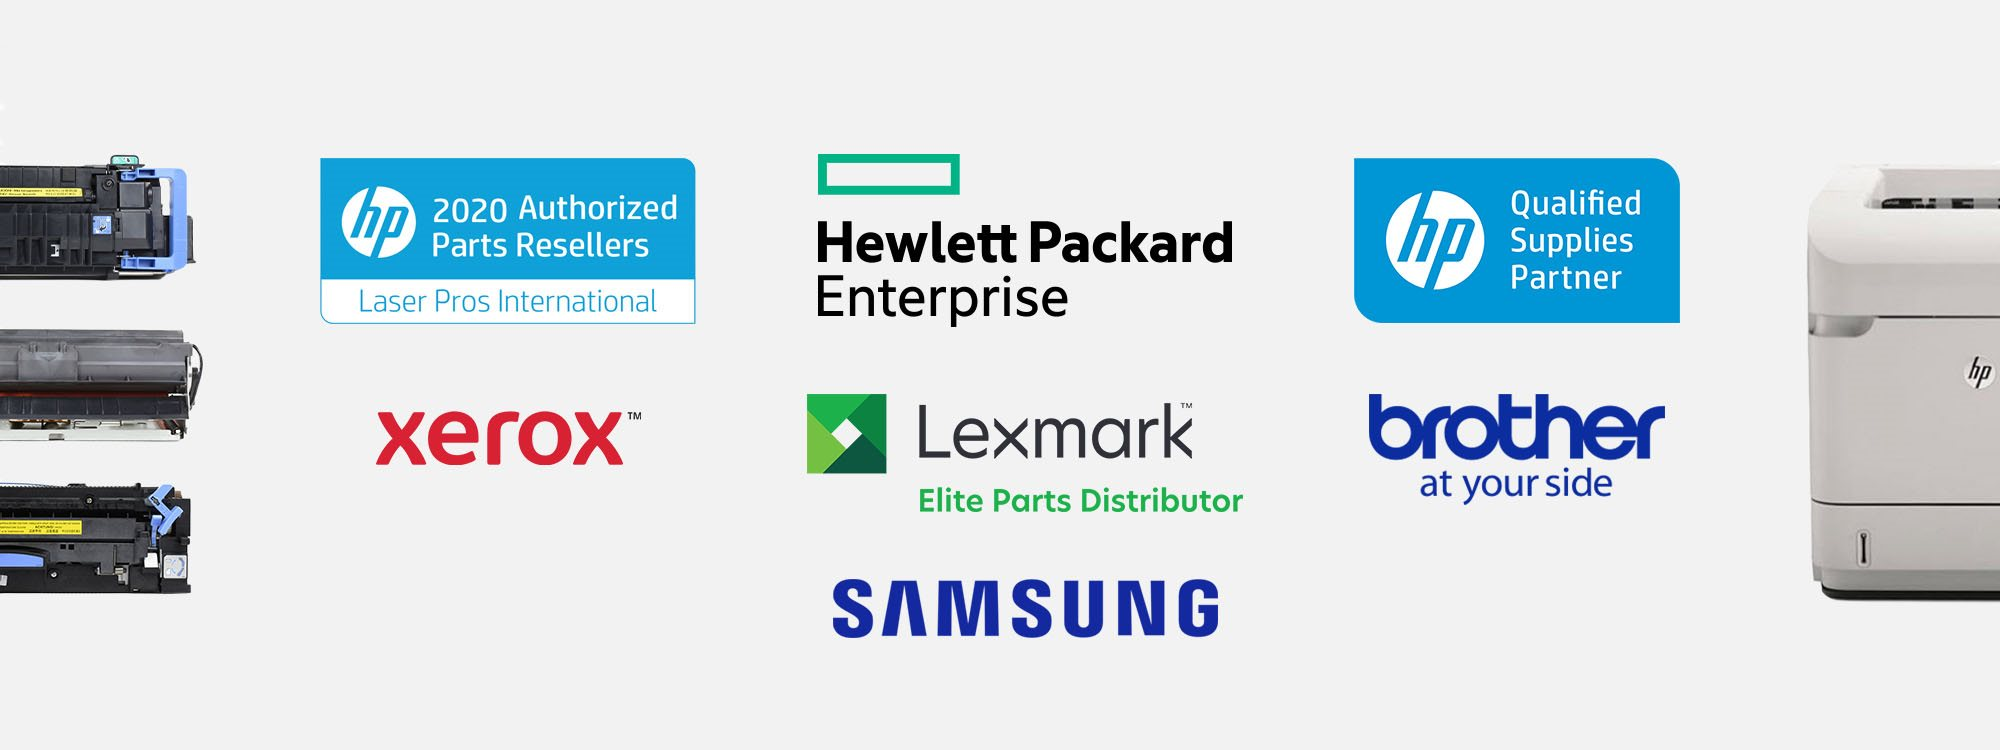 Our brands include HP, Samsung, Xerox, Lexmark, and Brother.